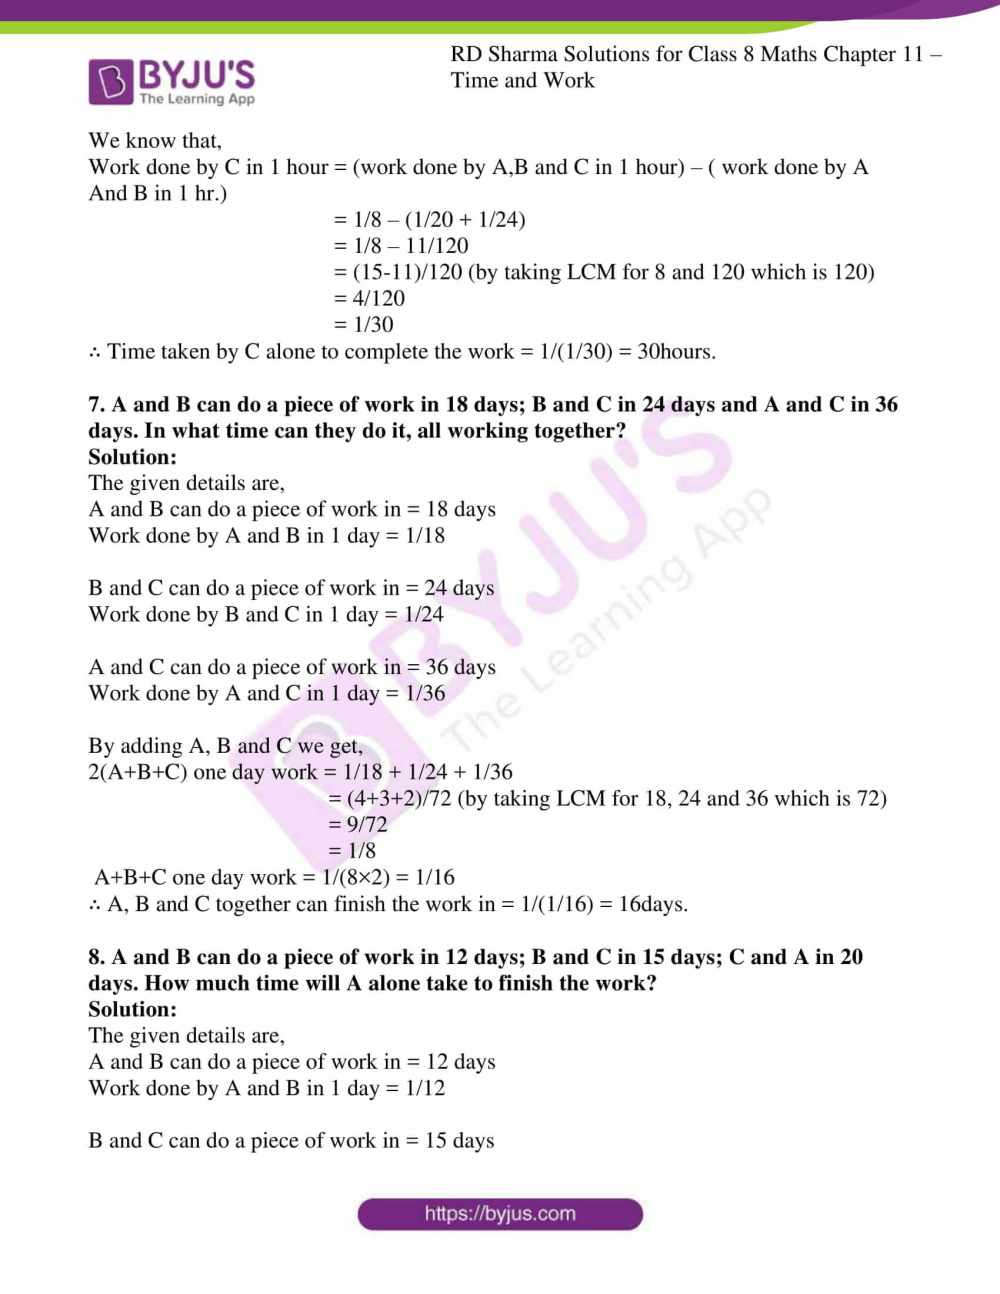 medium resolution of RD Sharma Solutions for Class 8 Chapter 11 Time and Work free download pdf